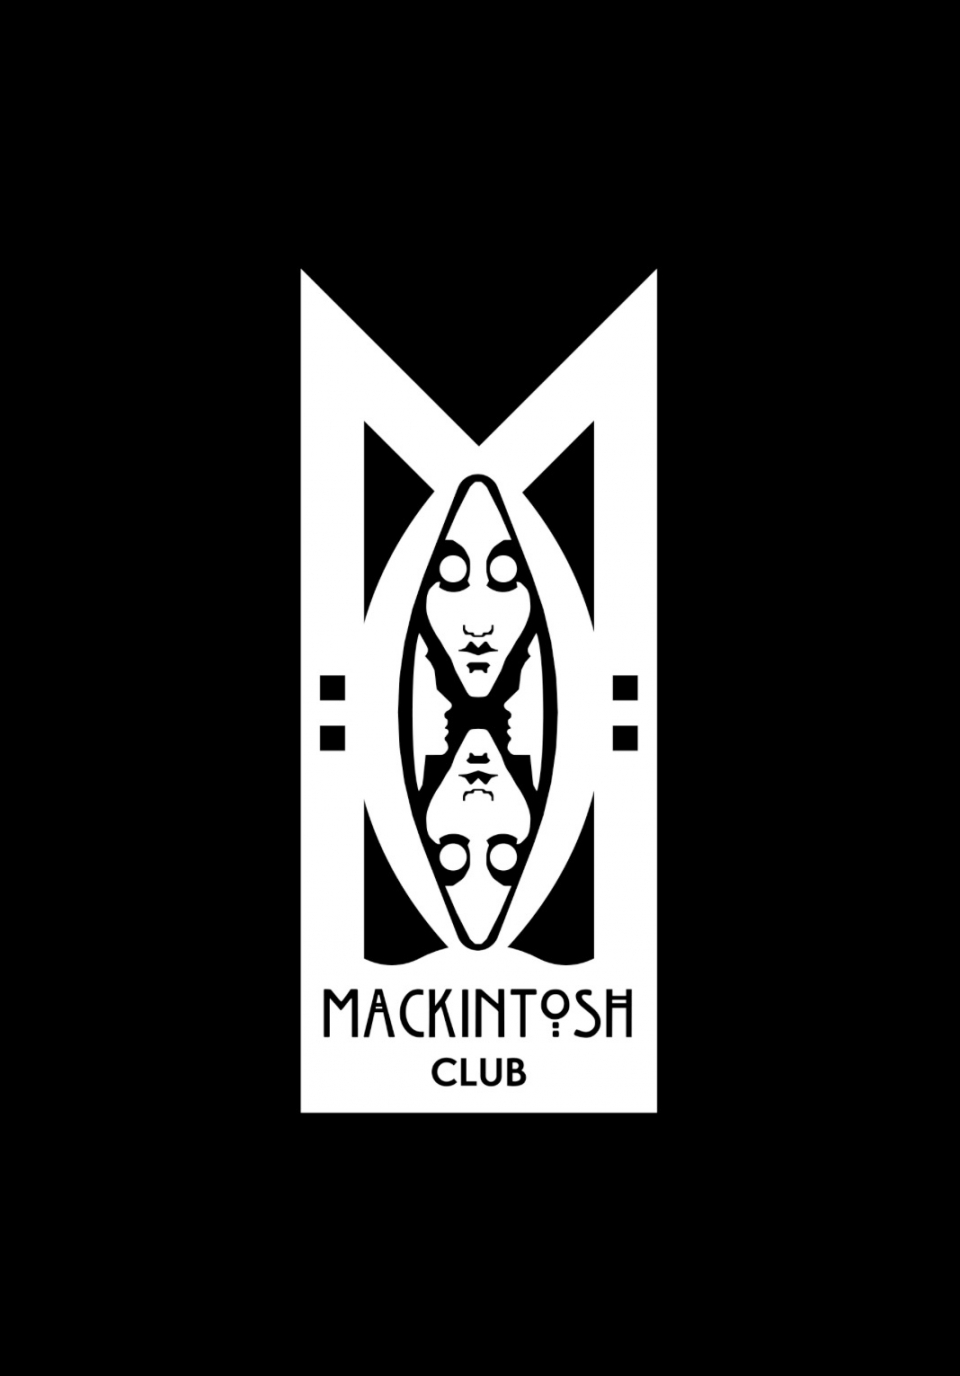 Mackintosh Club